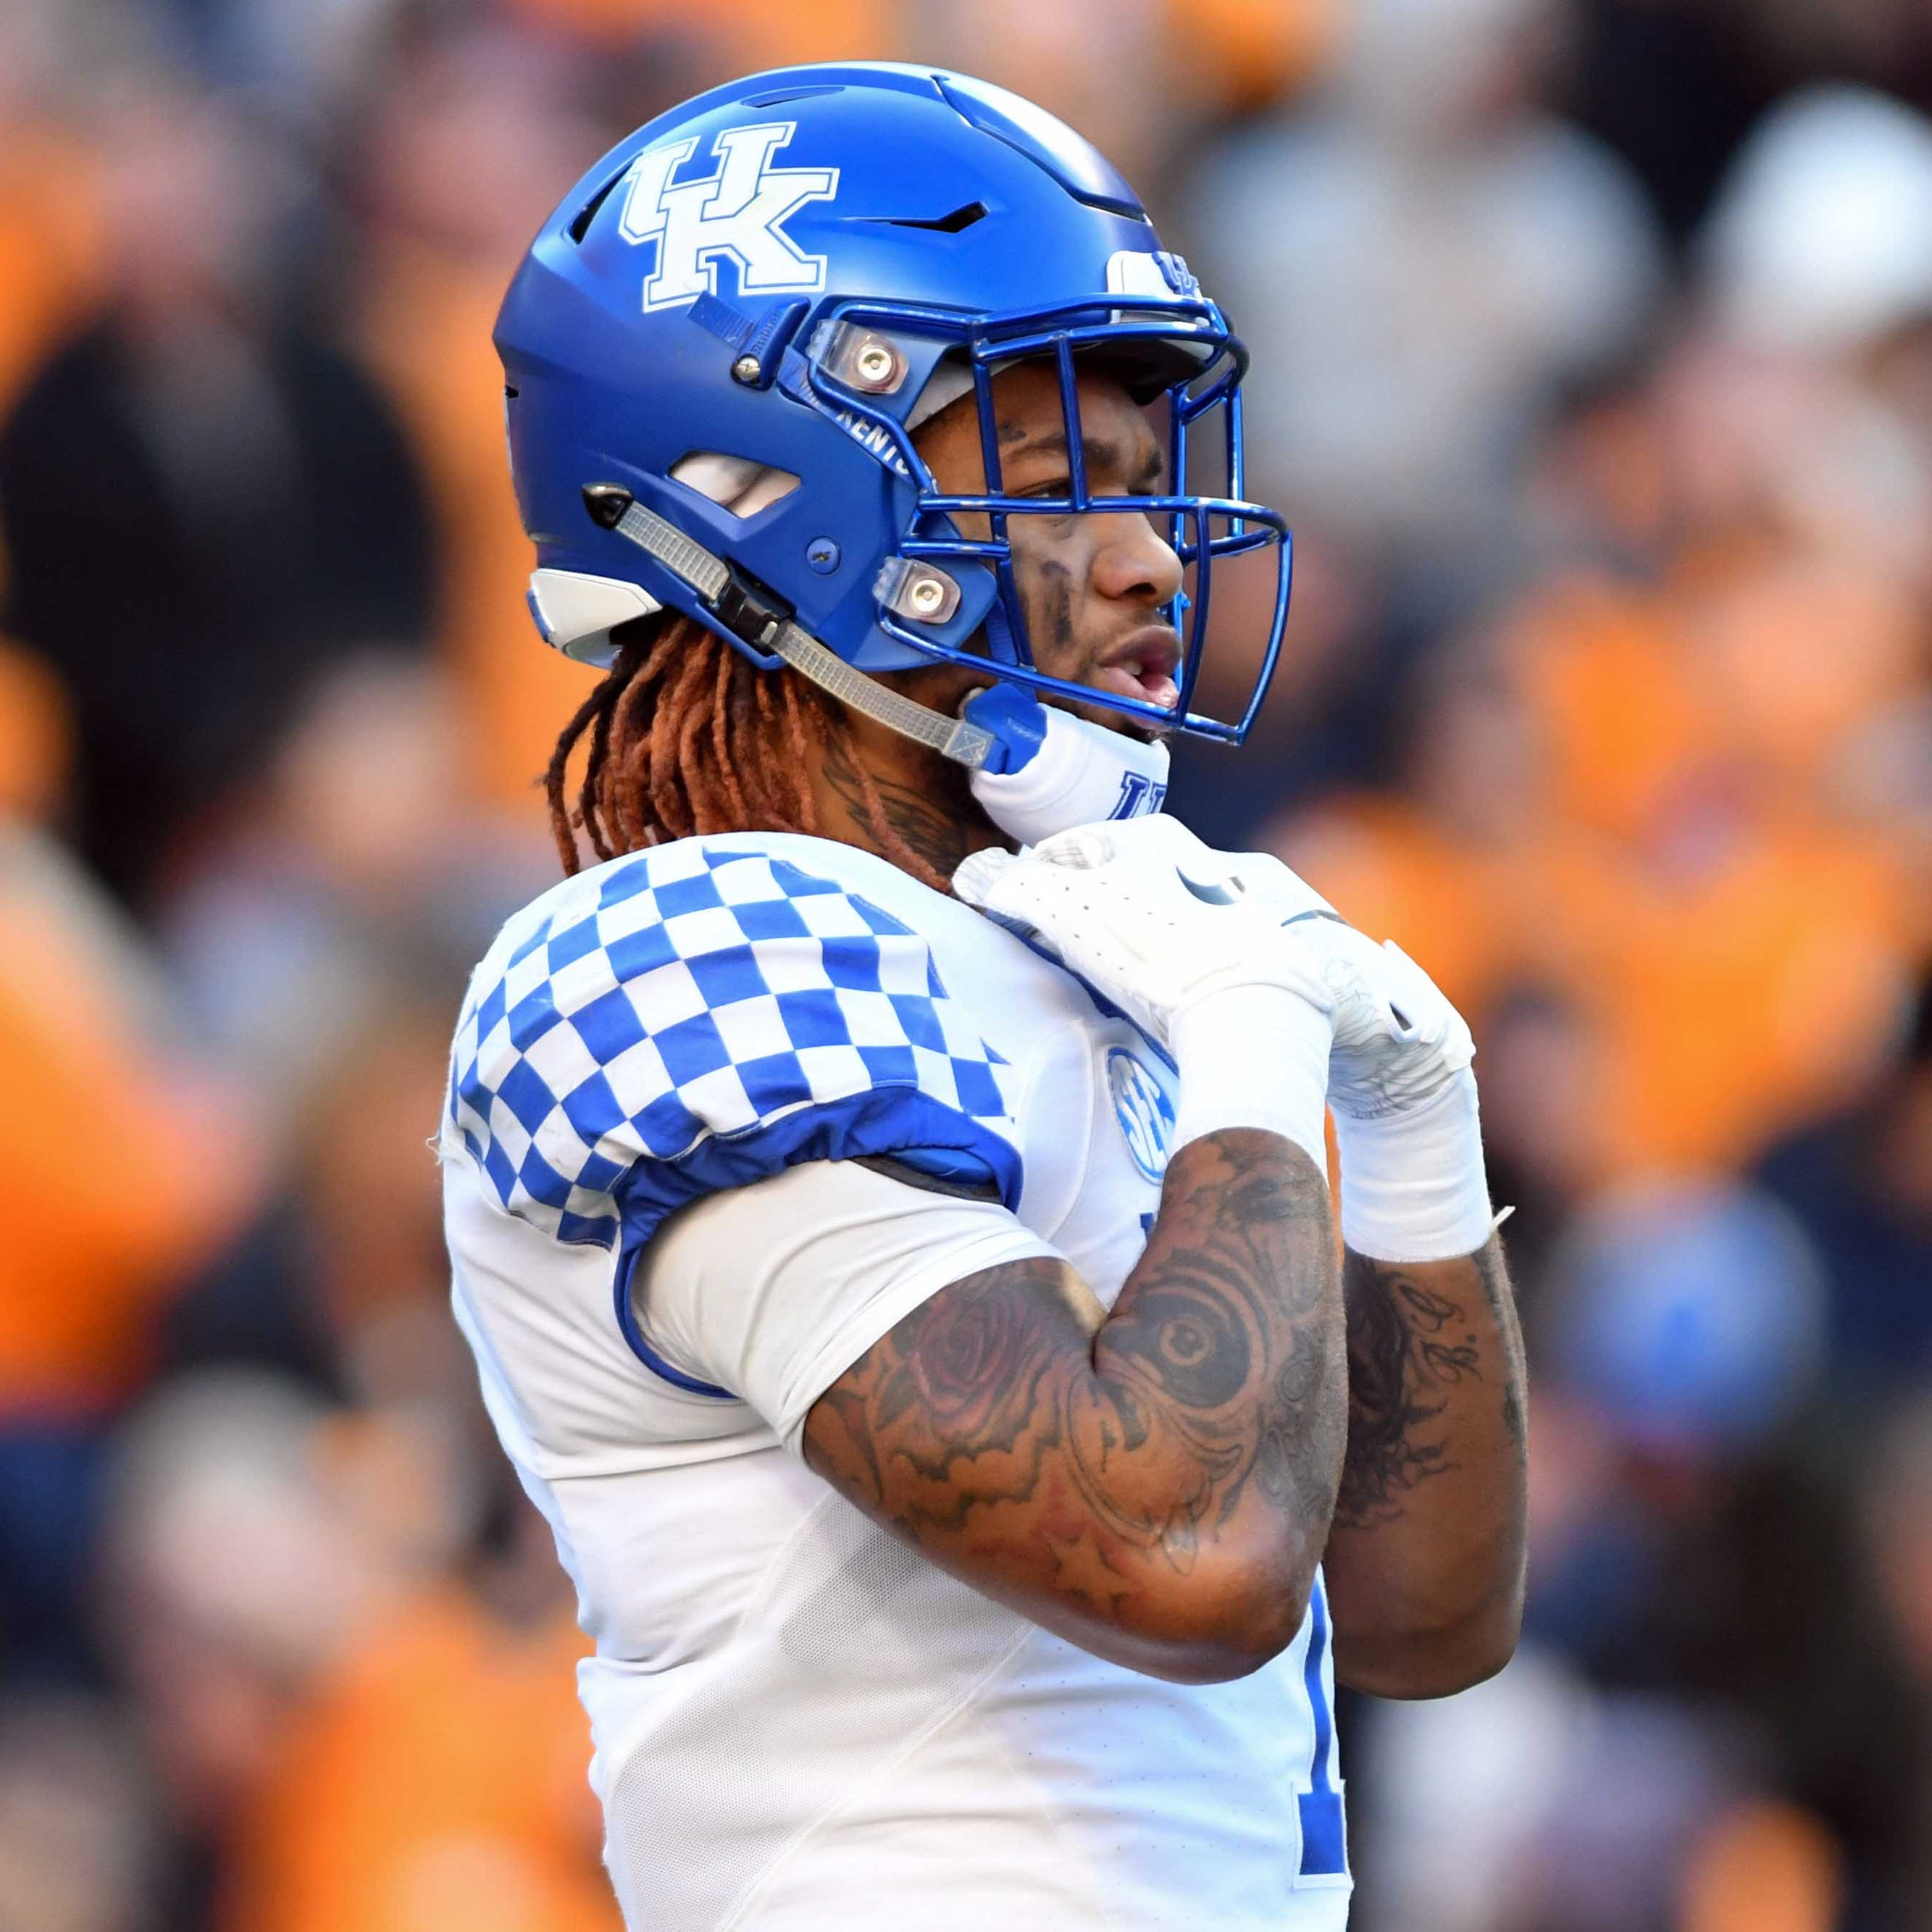 25. Kentucky (7-3) | Last game: Lost to Tennessee, 24-7 | Previous ranking: 17